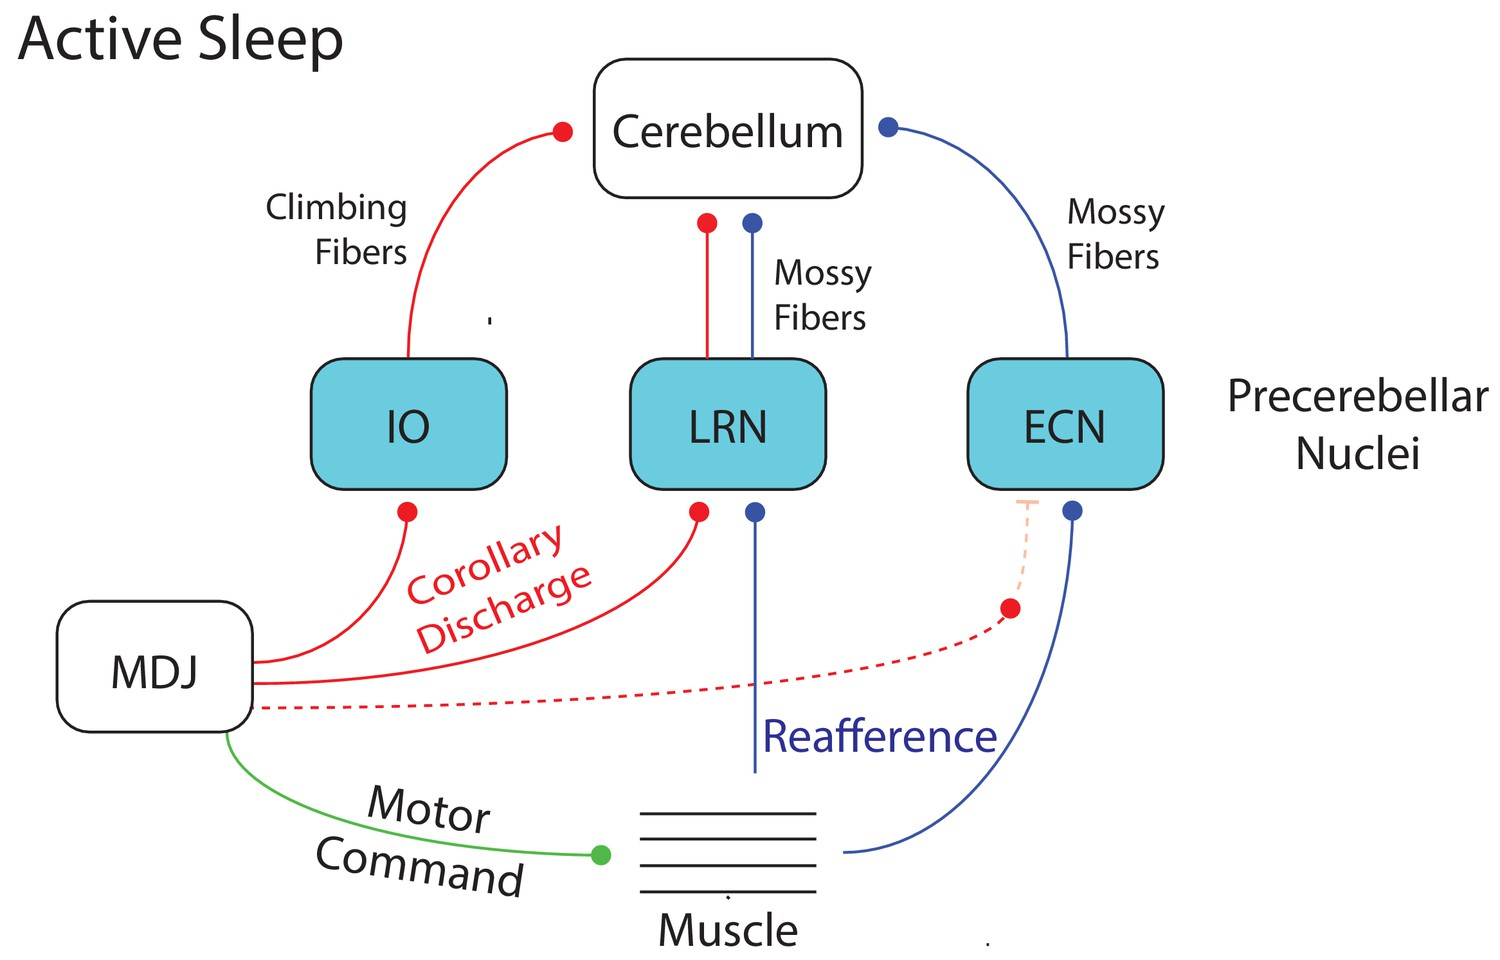 hight resolution of summary diagram depicting the flow of twitch related activity in the cerebellar system during active sleep in week old rats